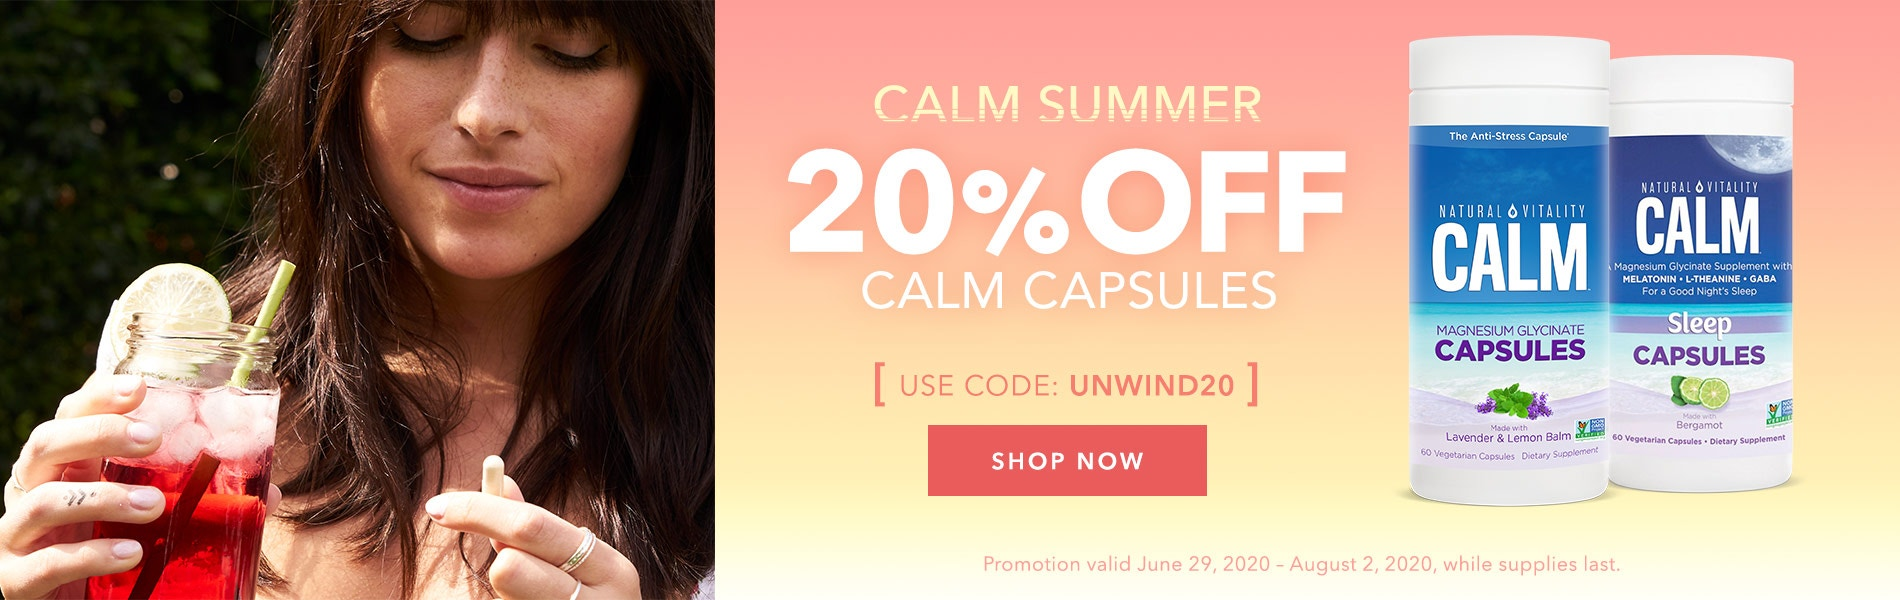 Calm Summer. Take 20% OFF CALM Capsules. Use Code: UNWIND20. Shop Now!